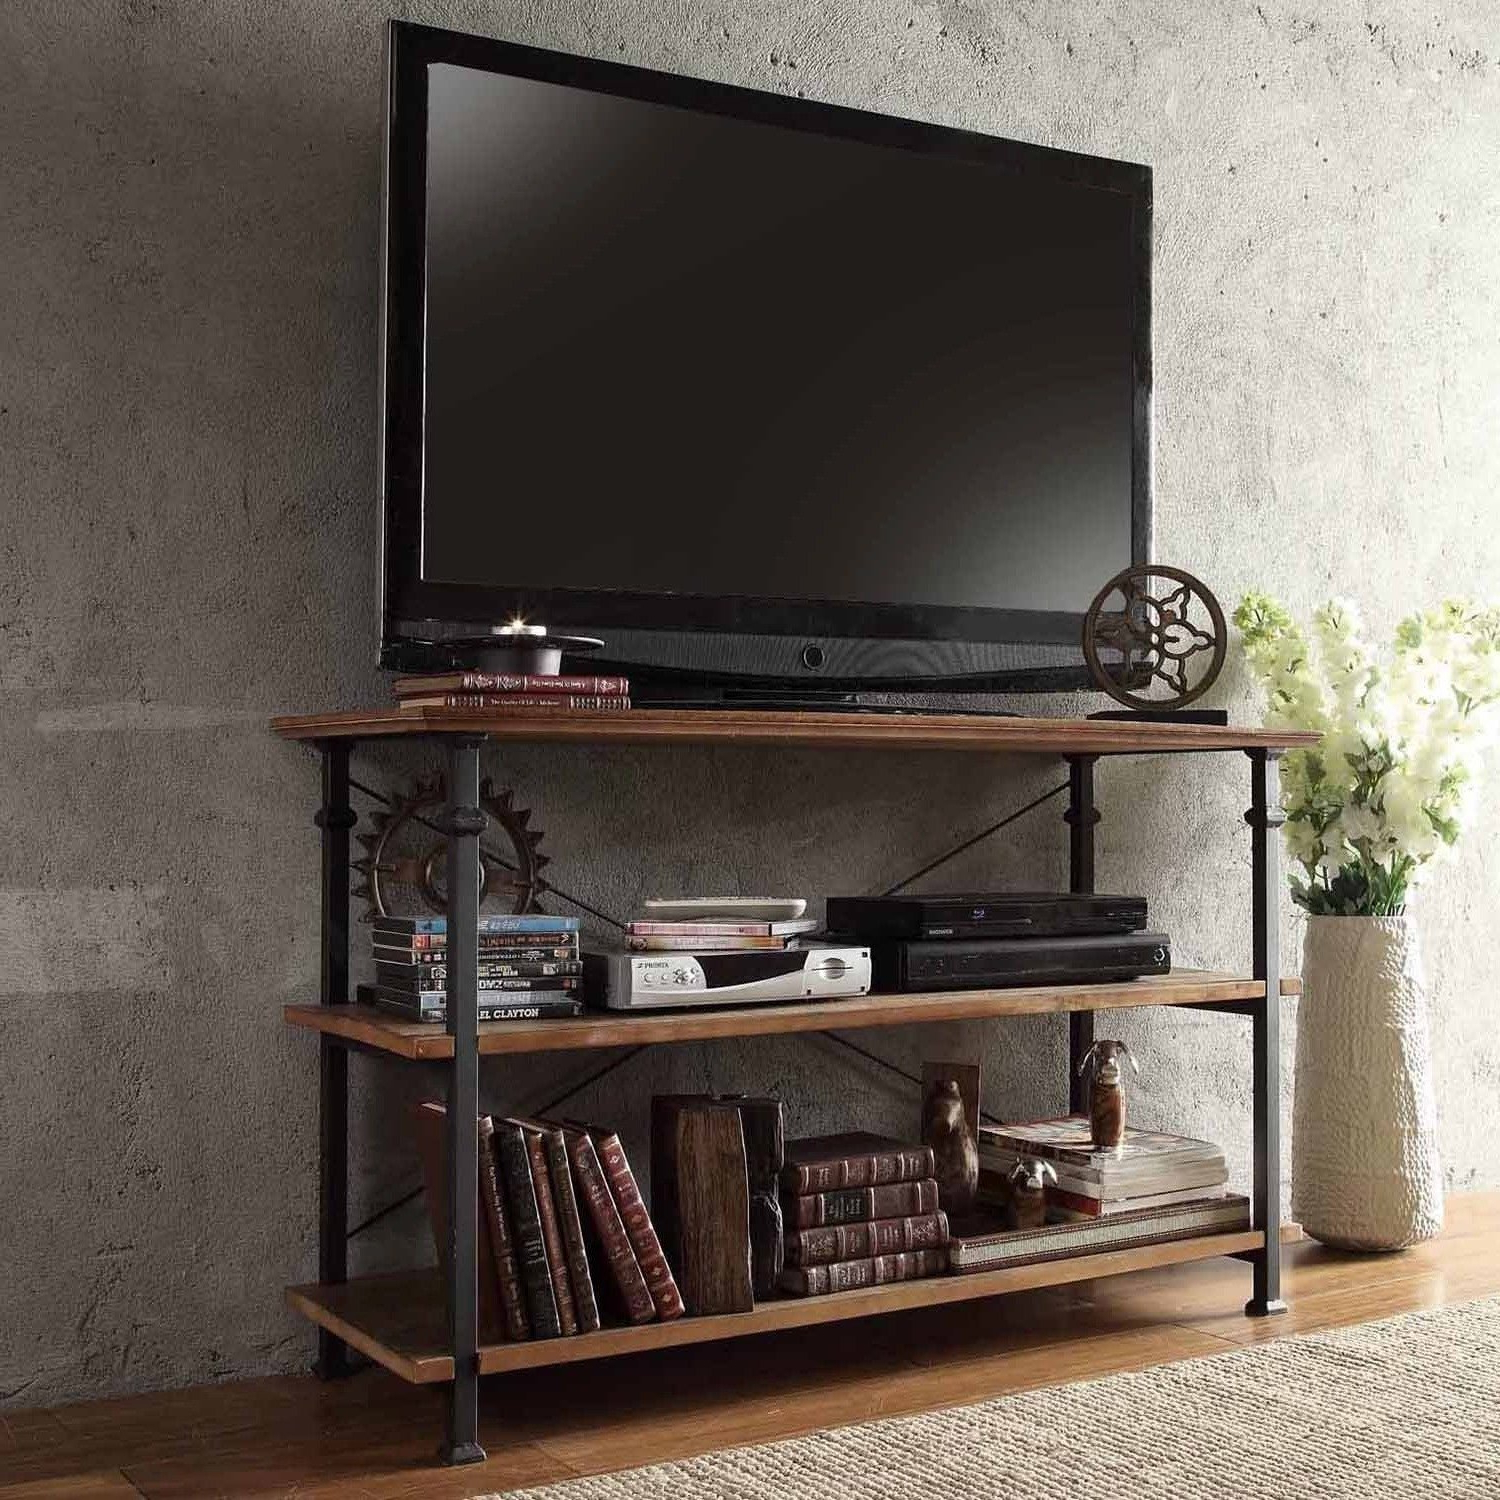 Cheap Metal And Wood Tv Stand, Find Metal And Wood Tv Stand Deals On With Most Current Reclaimed Wood And Metal Tv Stands (View 17 of 20)